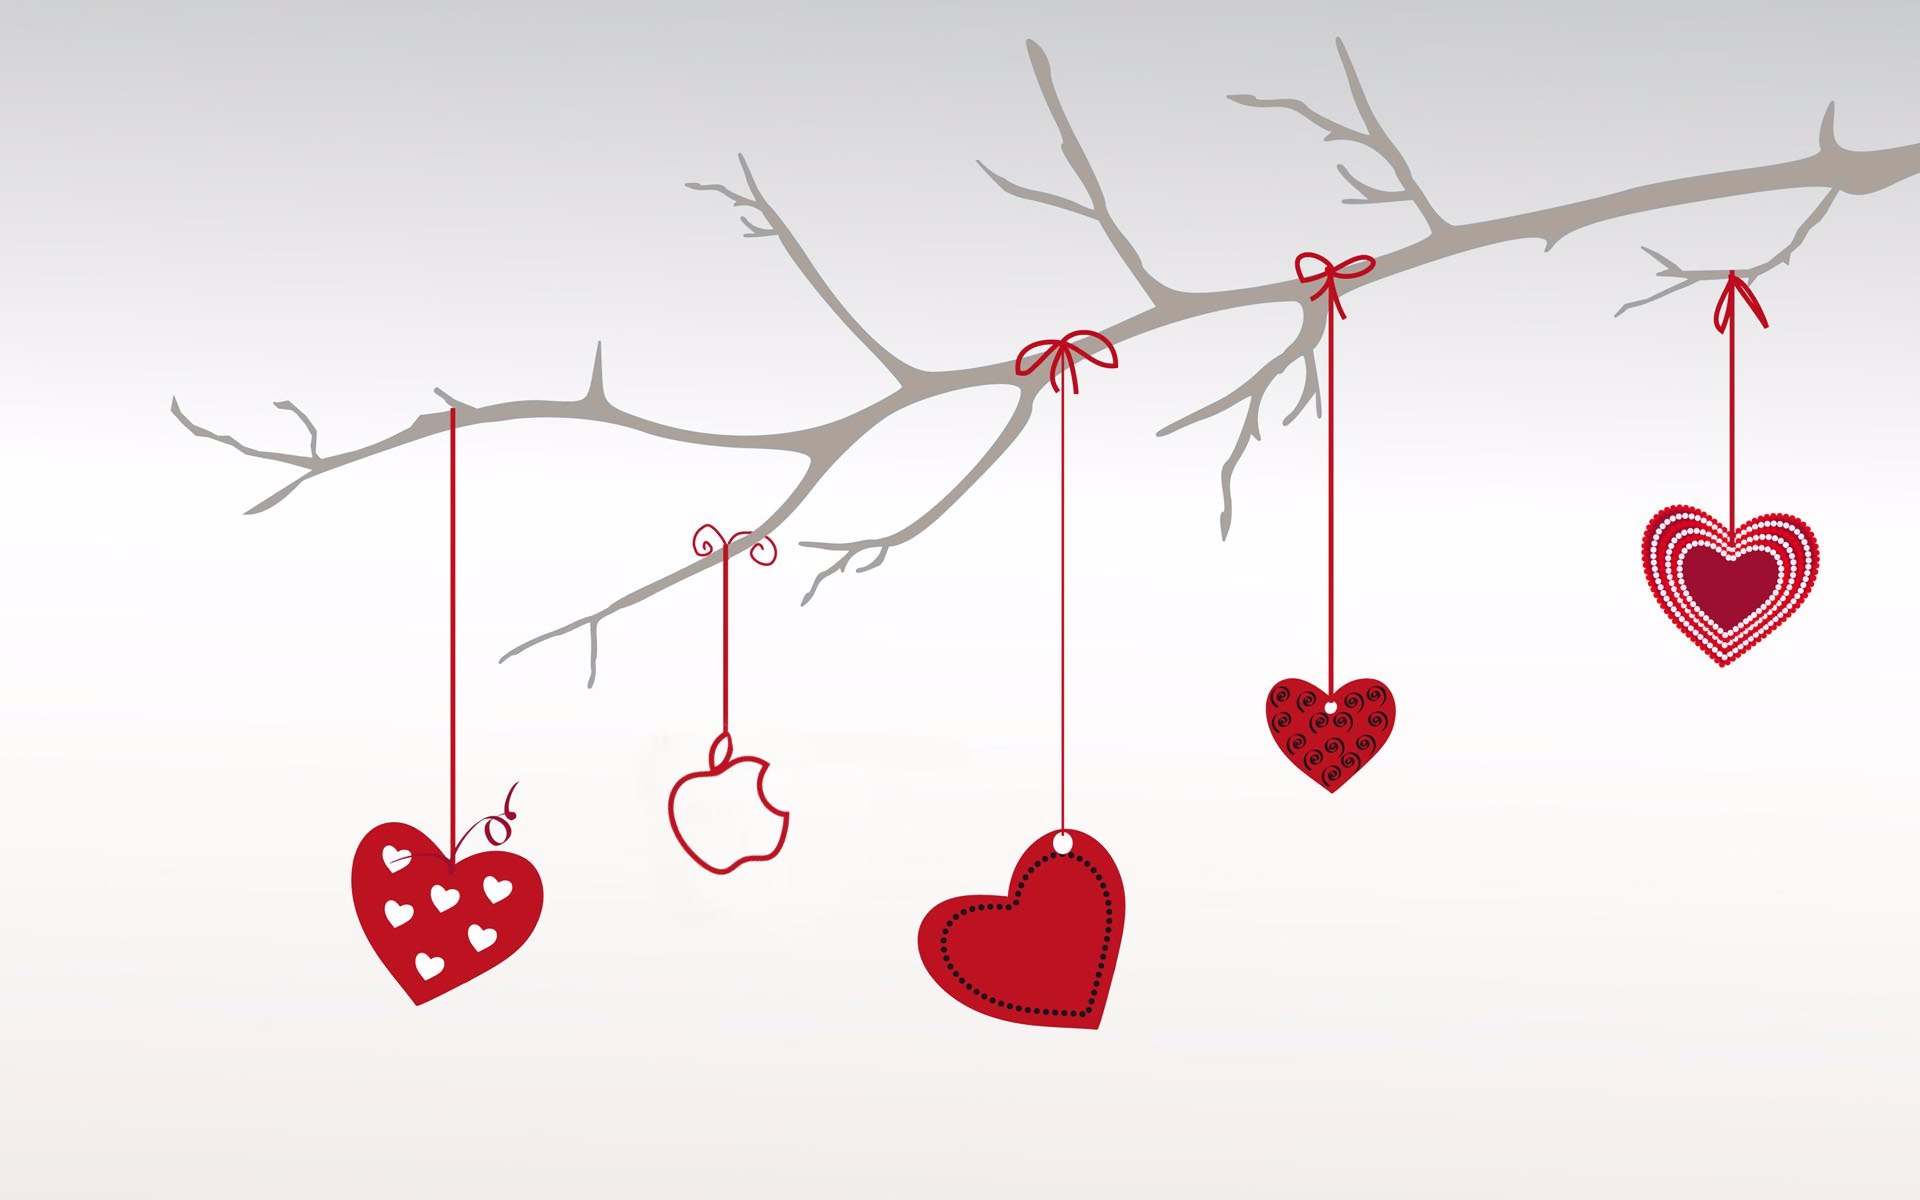 Hanging Hearts Hd Wallpaper Background Image 1920x1200